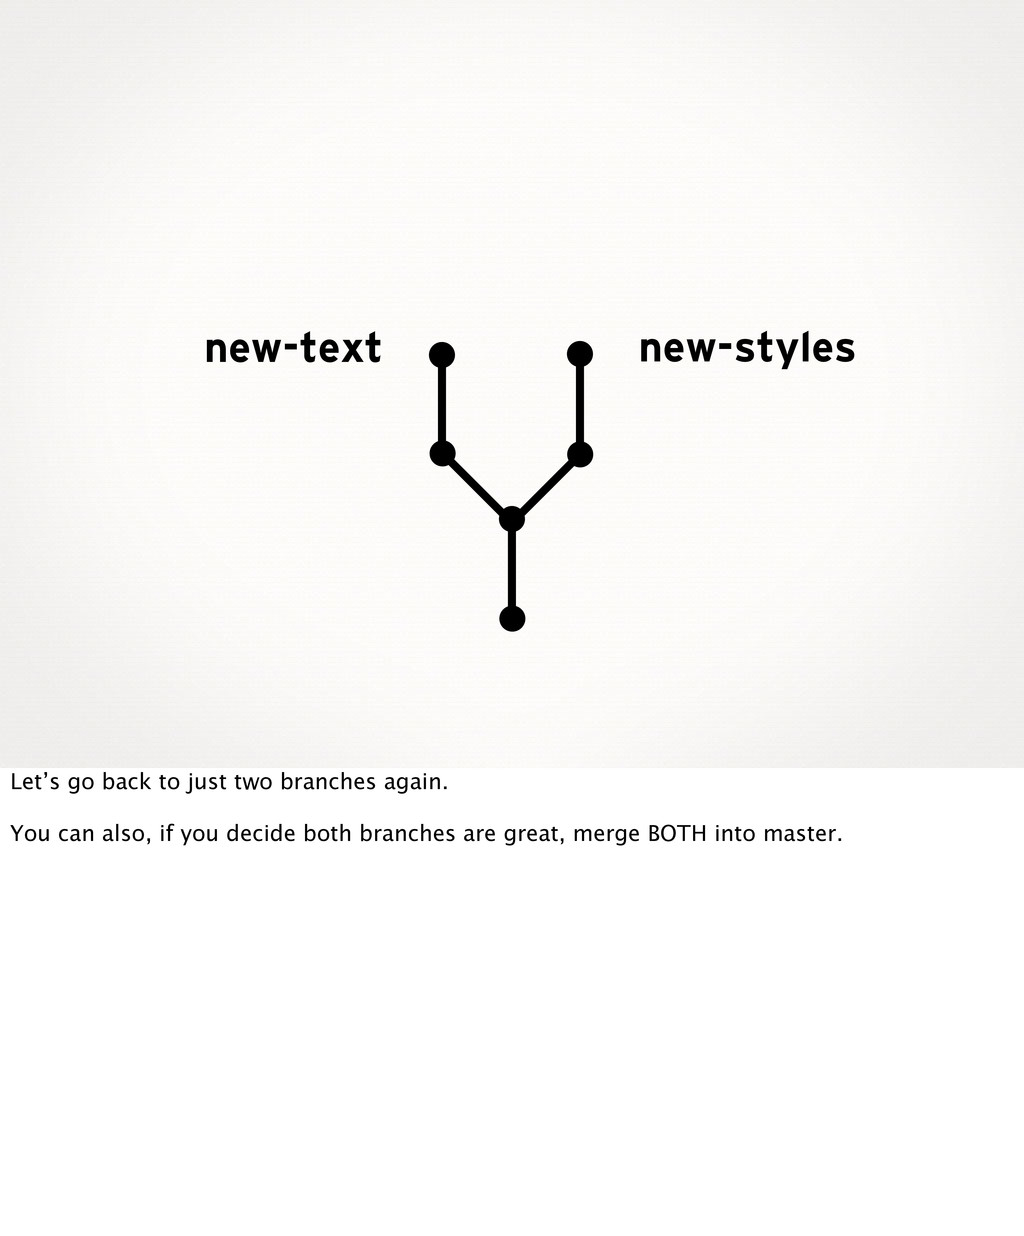 new-styles new-text Let's go back to just two b...